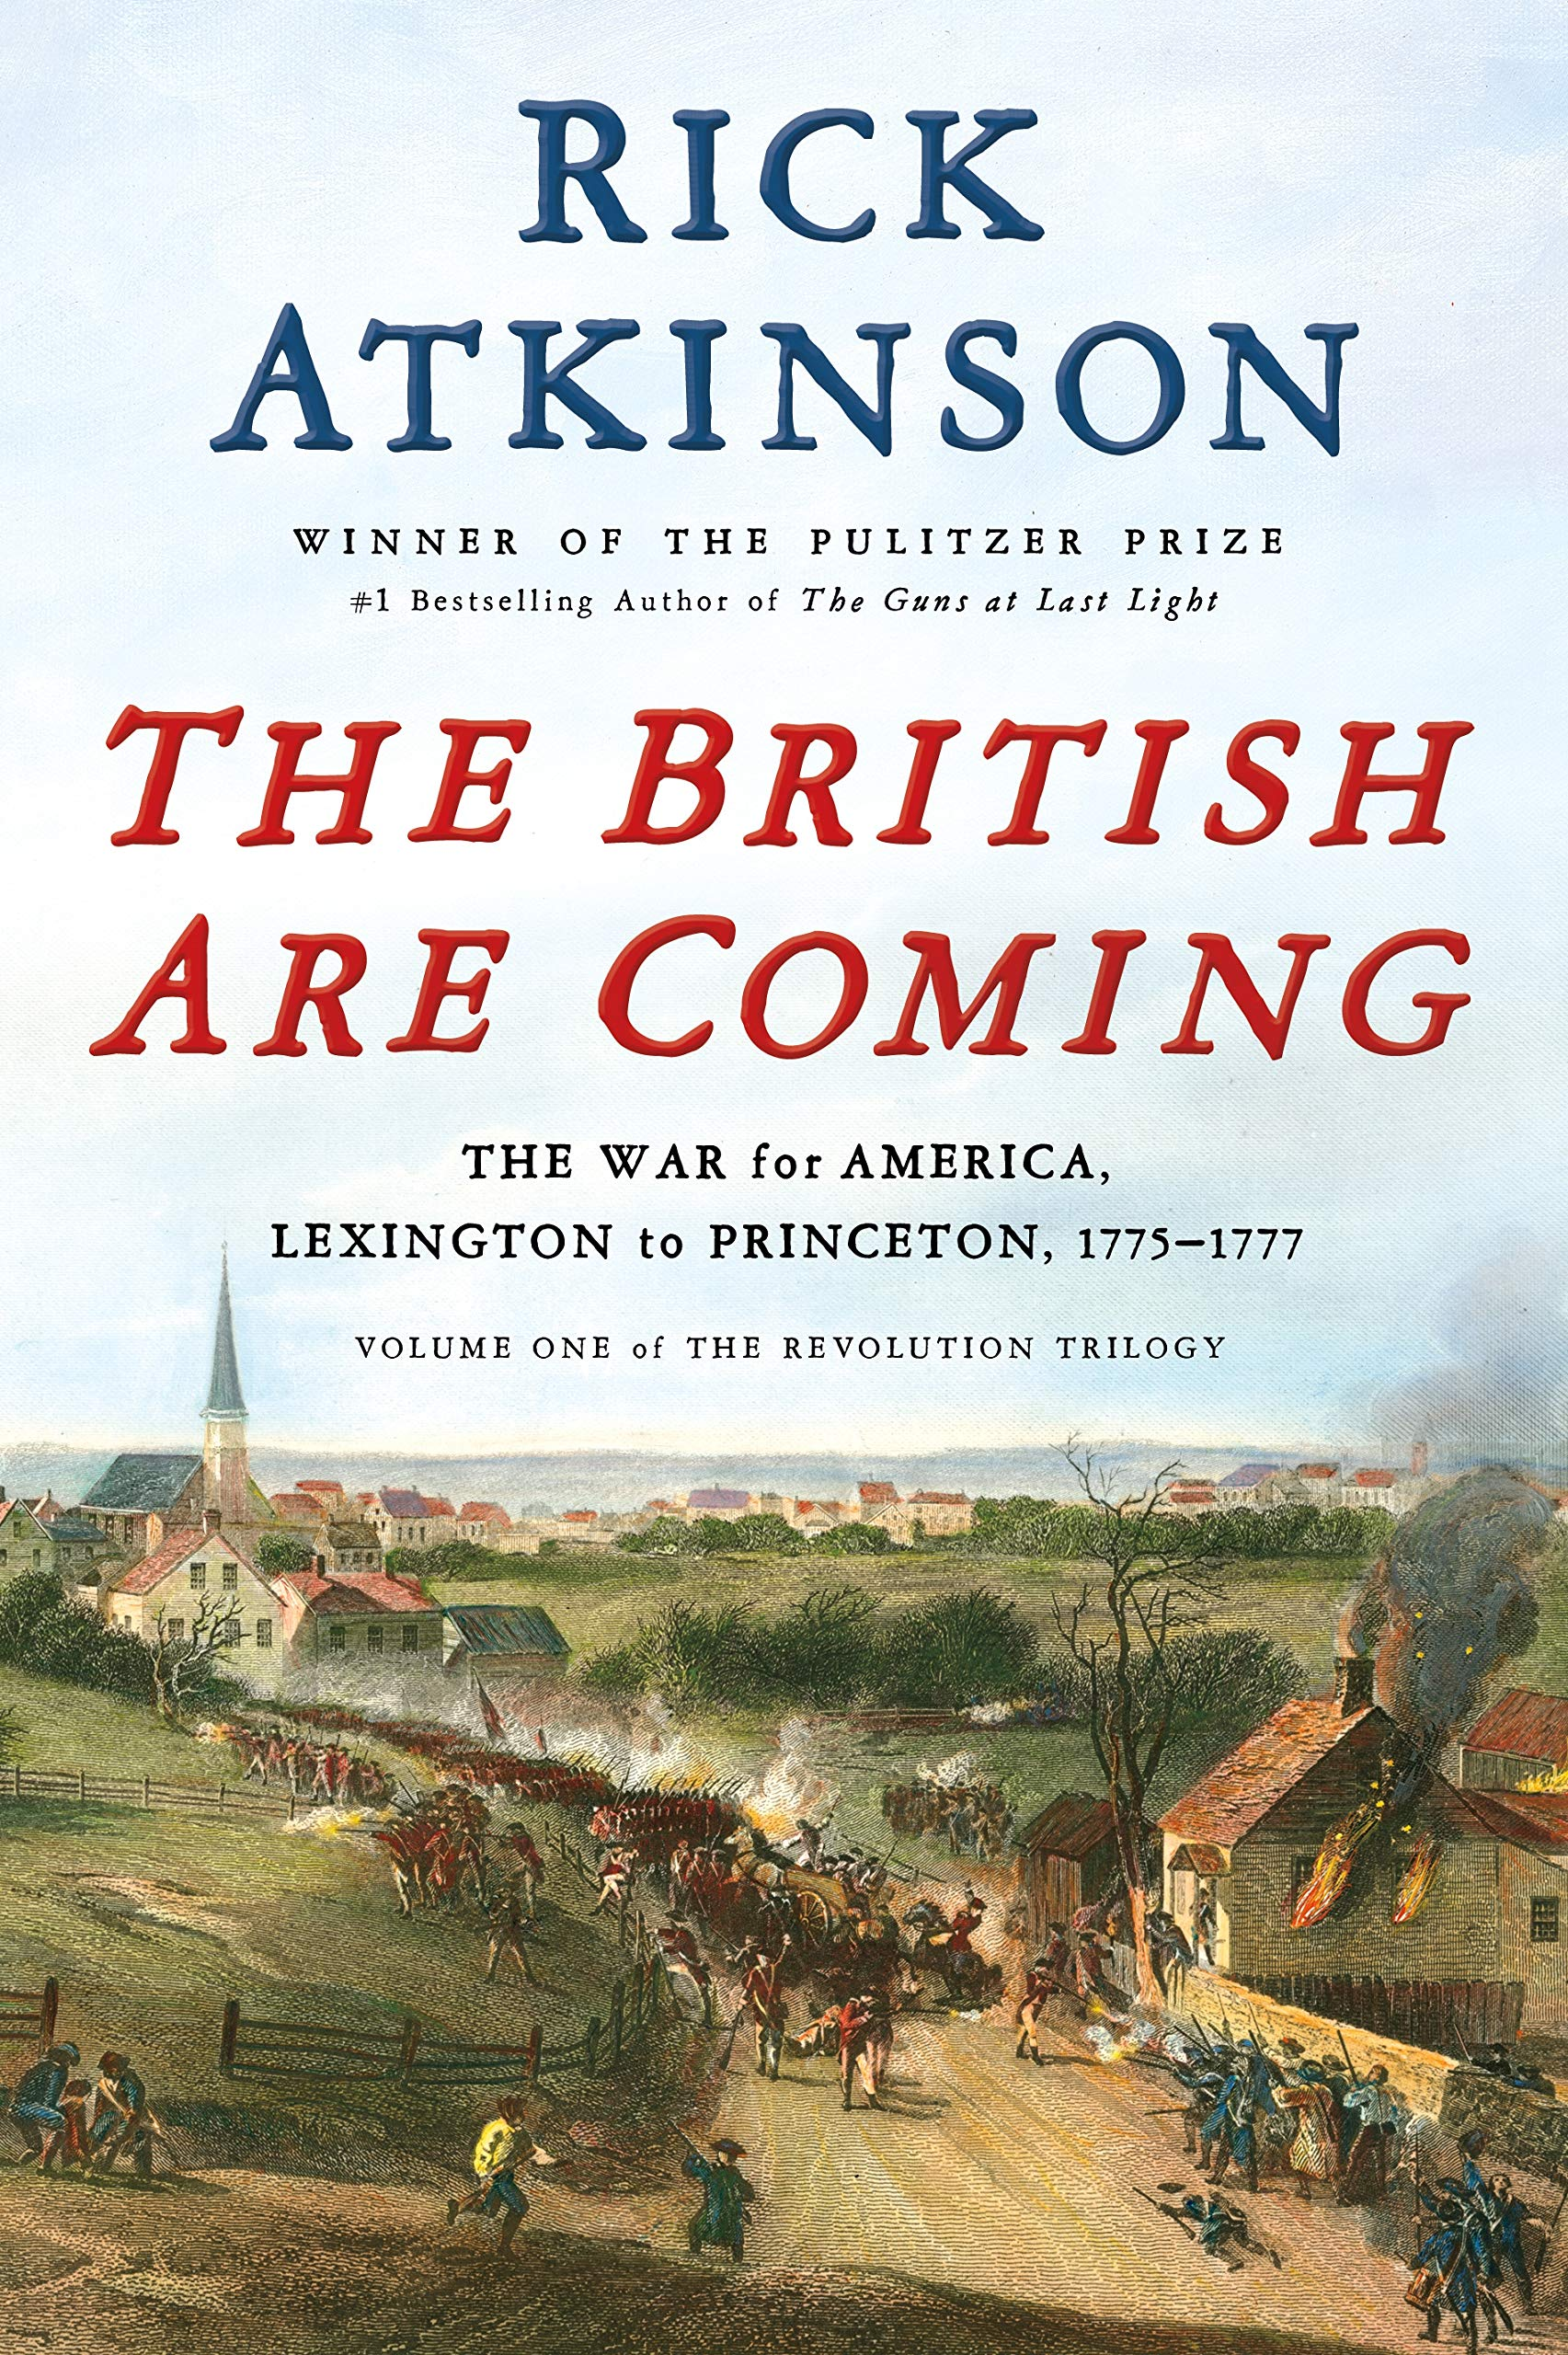 The British Are Coming: The War for America, Lexington to Princeton, 1775-1777 (The Revolution Trilogy) by Henry Holt and Co.